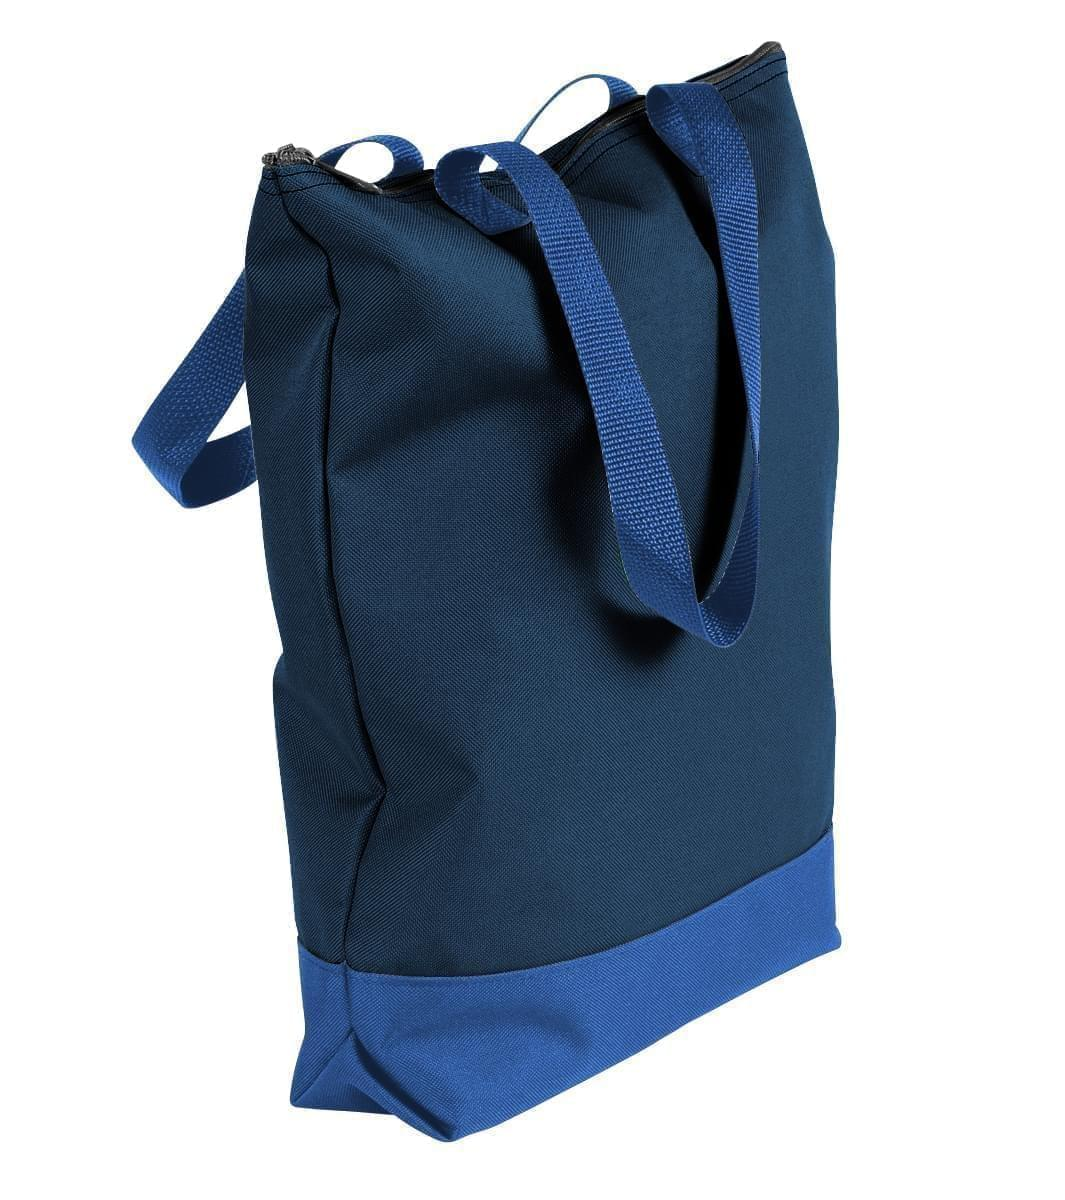 USA Made Poly Notebook Tote Bags, Navy-Royal Blue, 1AAMX1UAW3